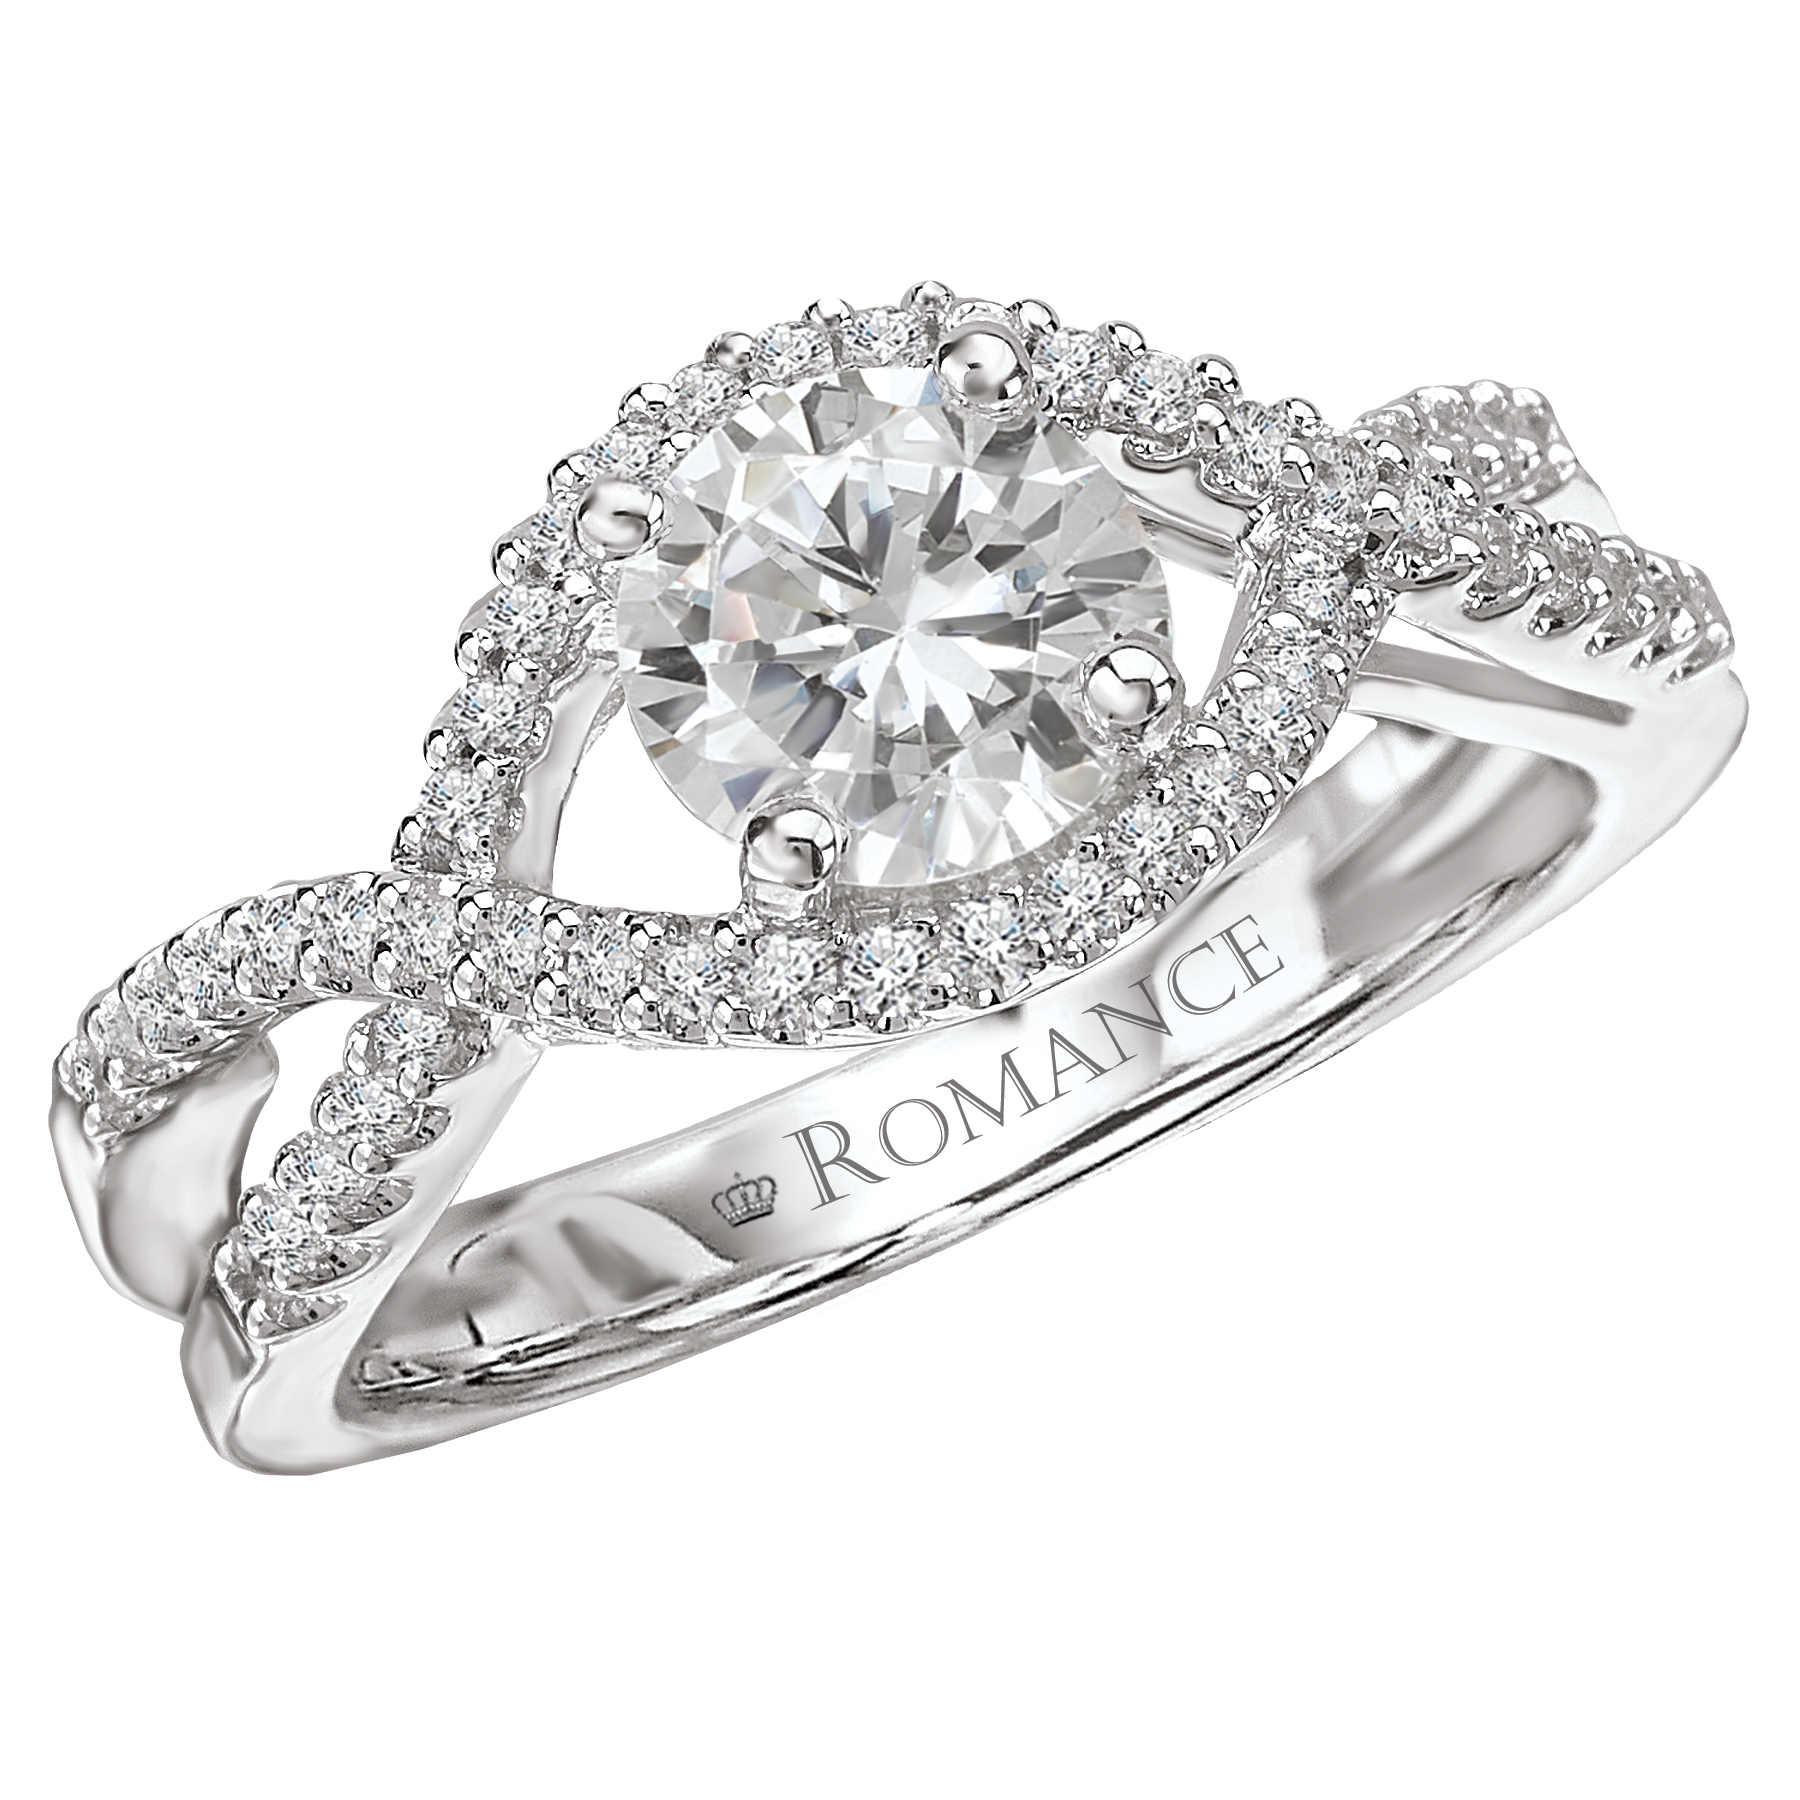 Romance Open Shoulder With A Twist Engagement Ring In 2019 Diamond Double Row Contour Tiara Anniversary Bands In White Gold (Gallery 22 of 25)